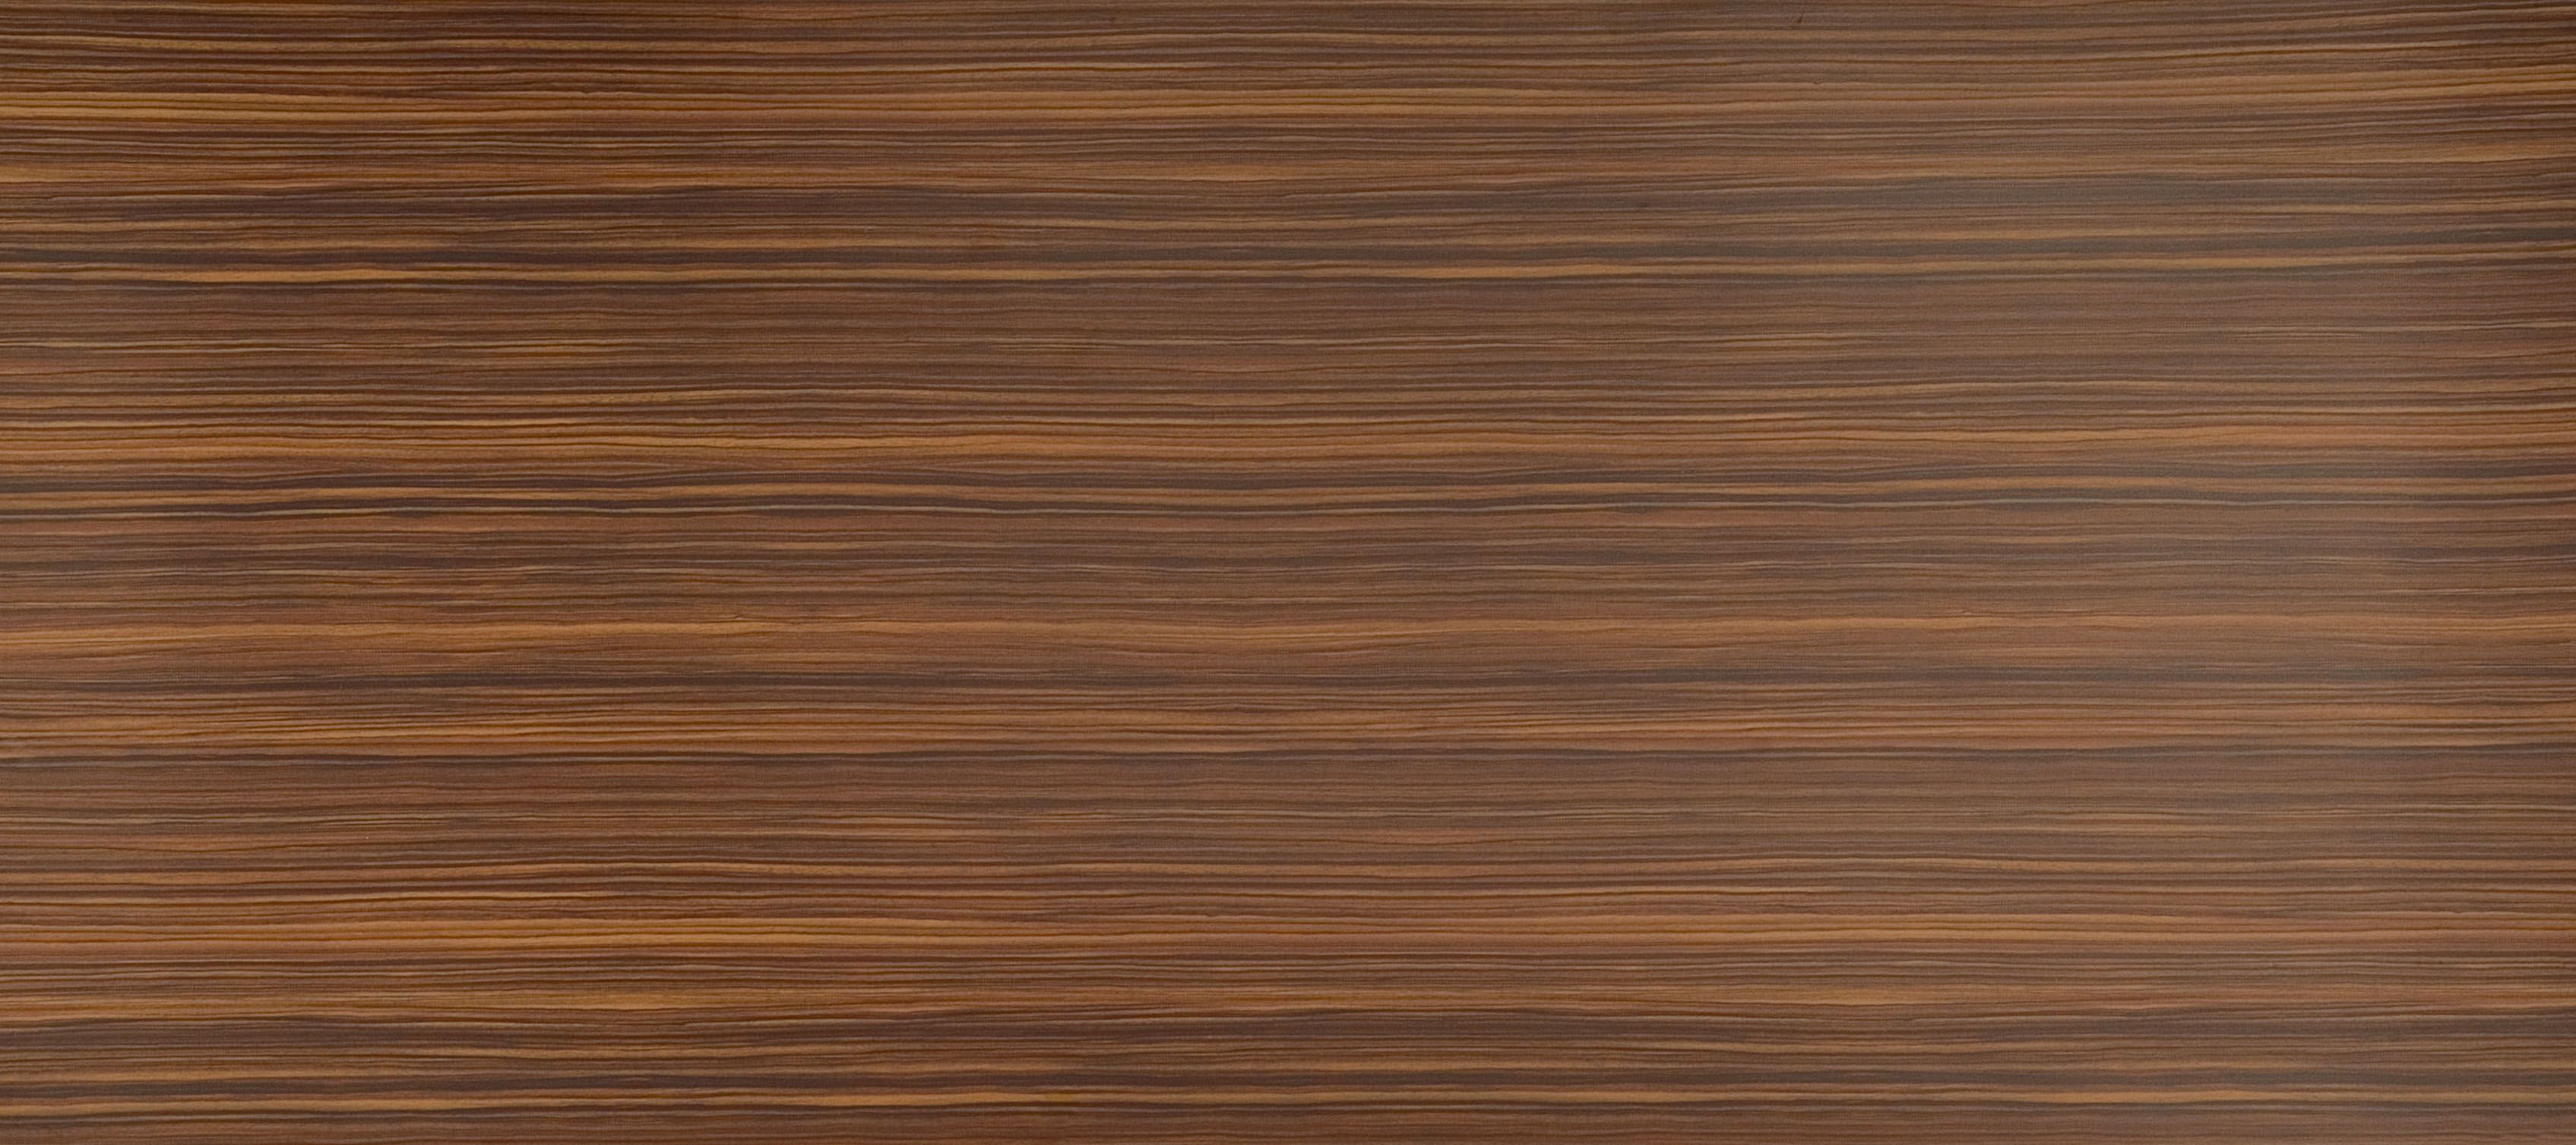 Wooden Texture Texture wood, free dow...